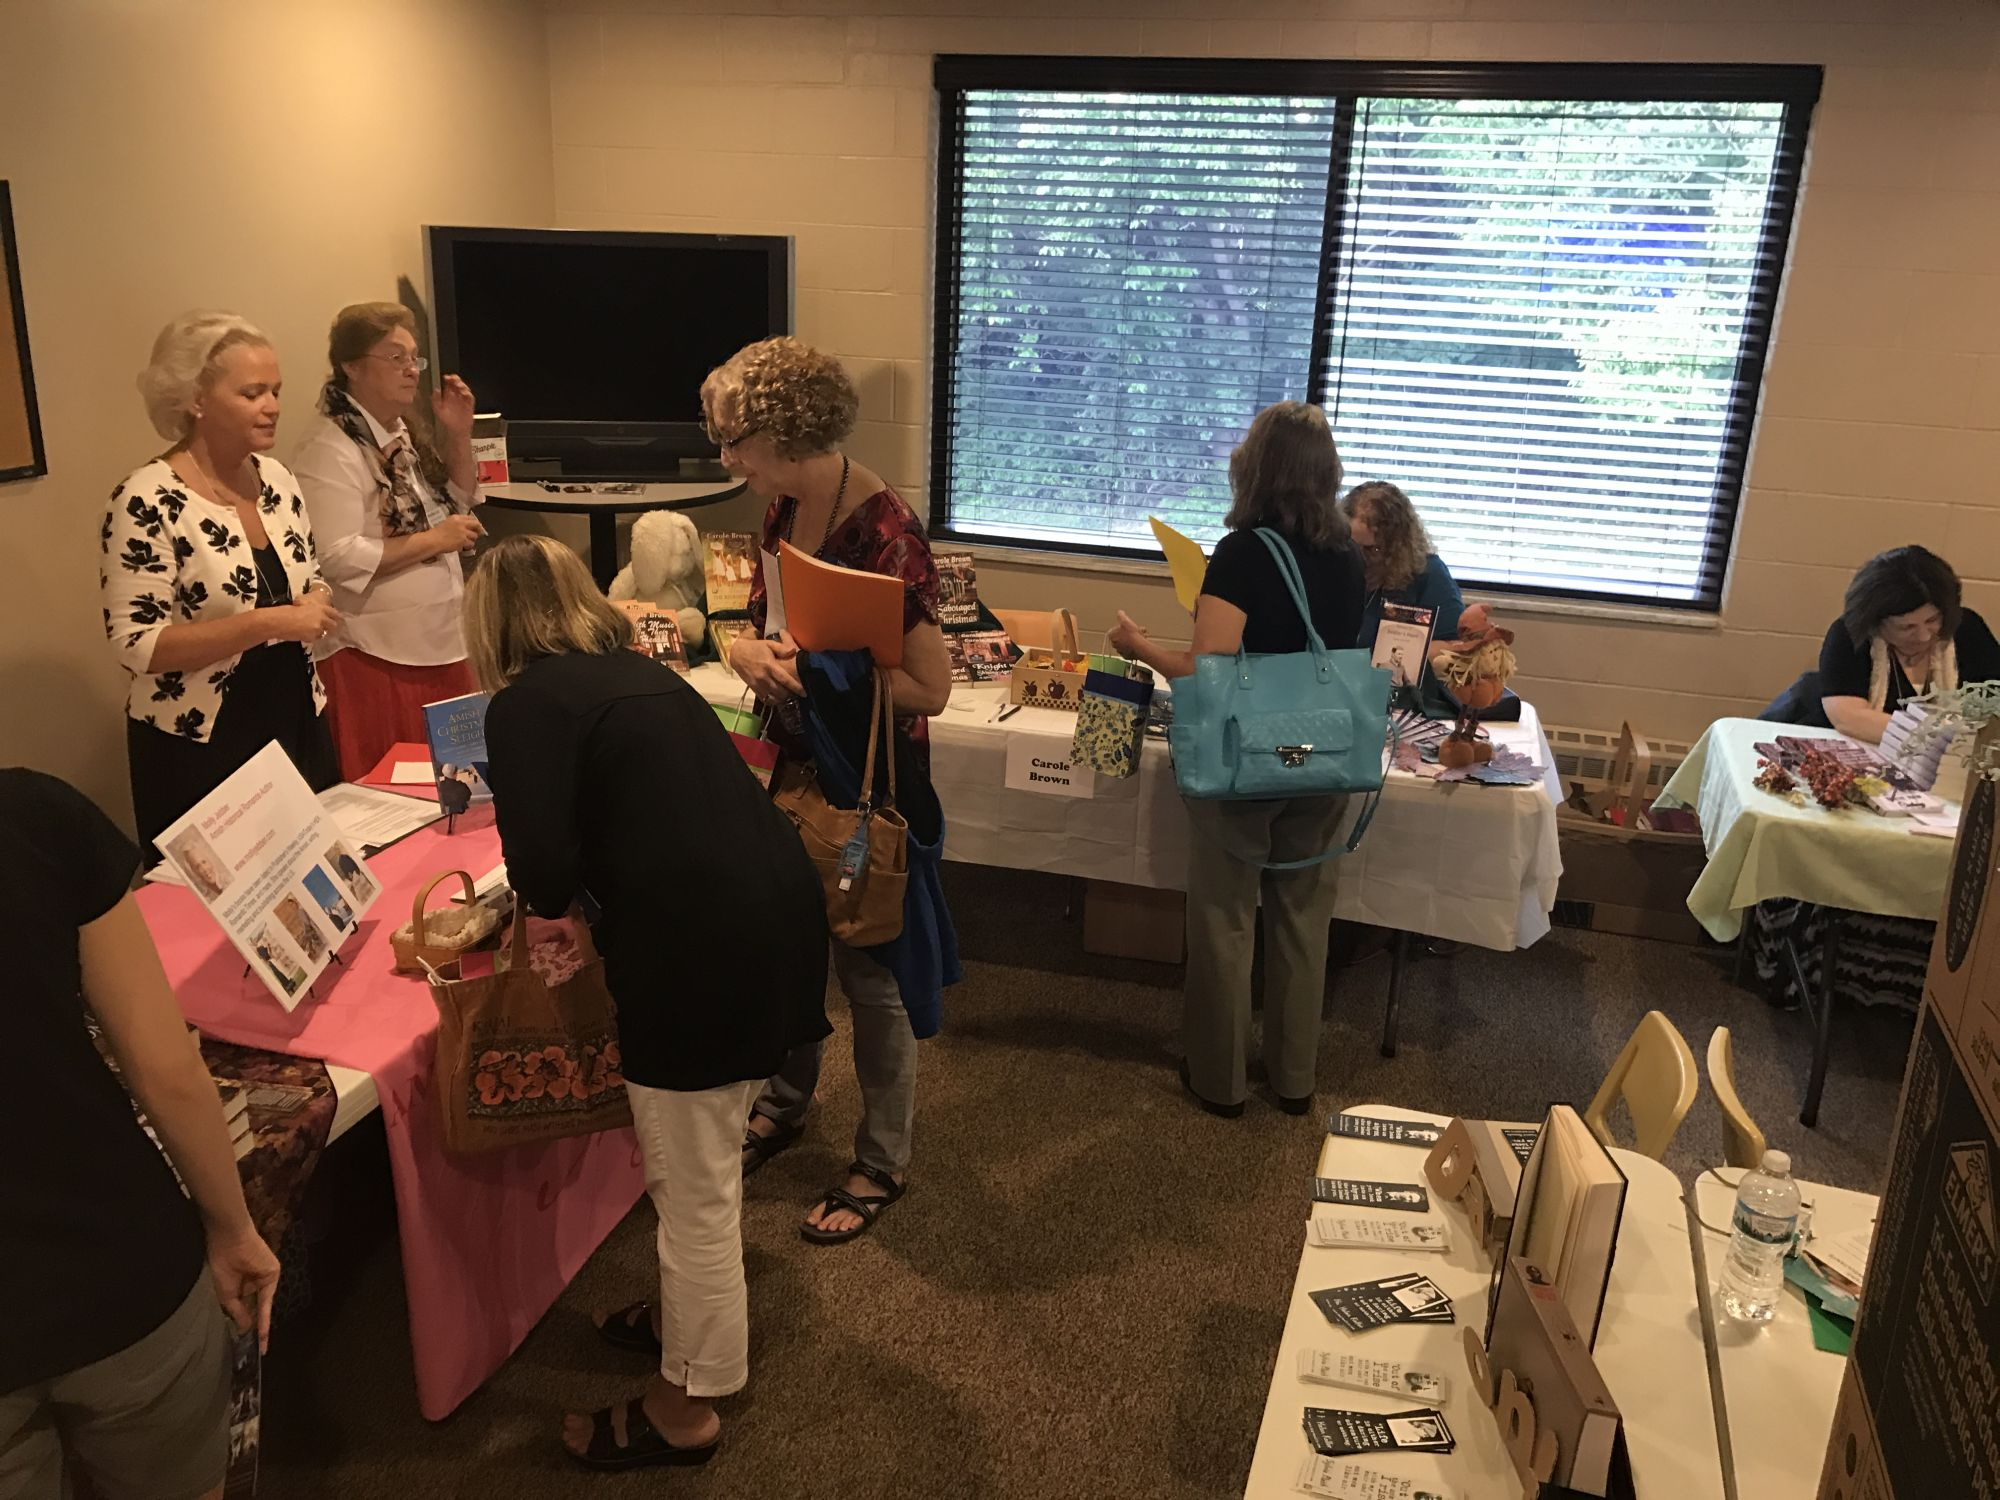 Authors and writers networking at the event.